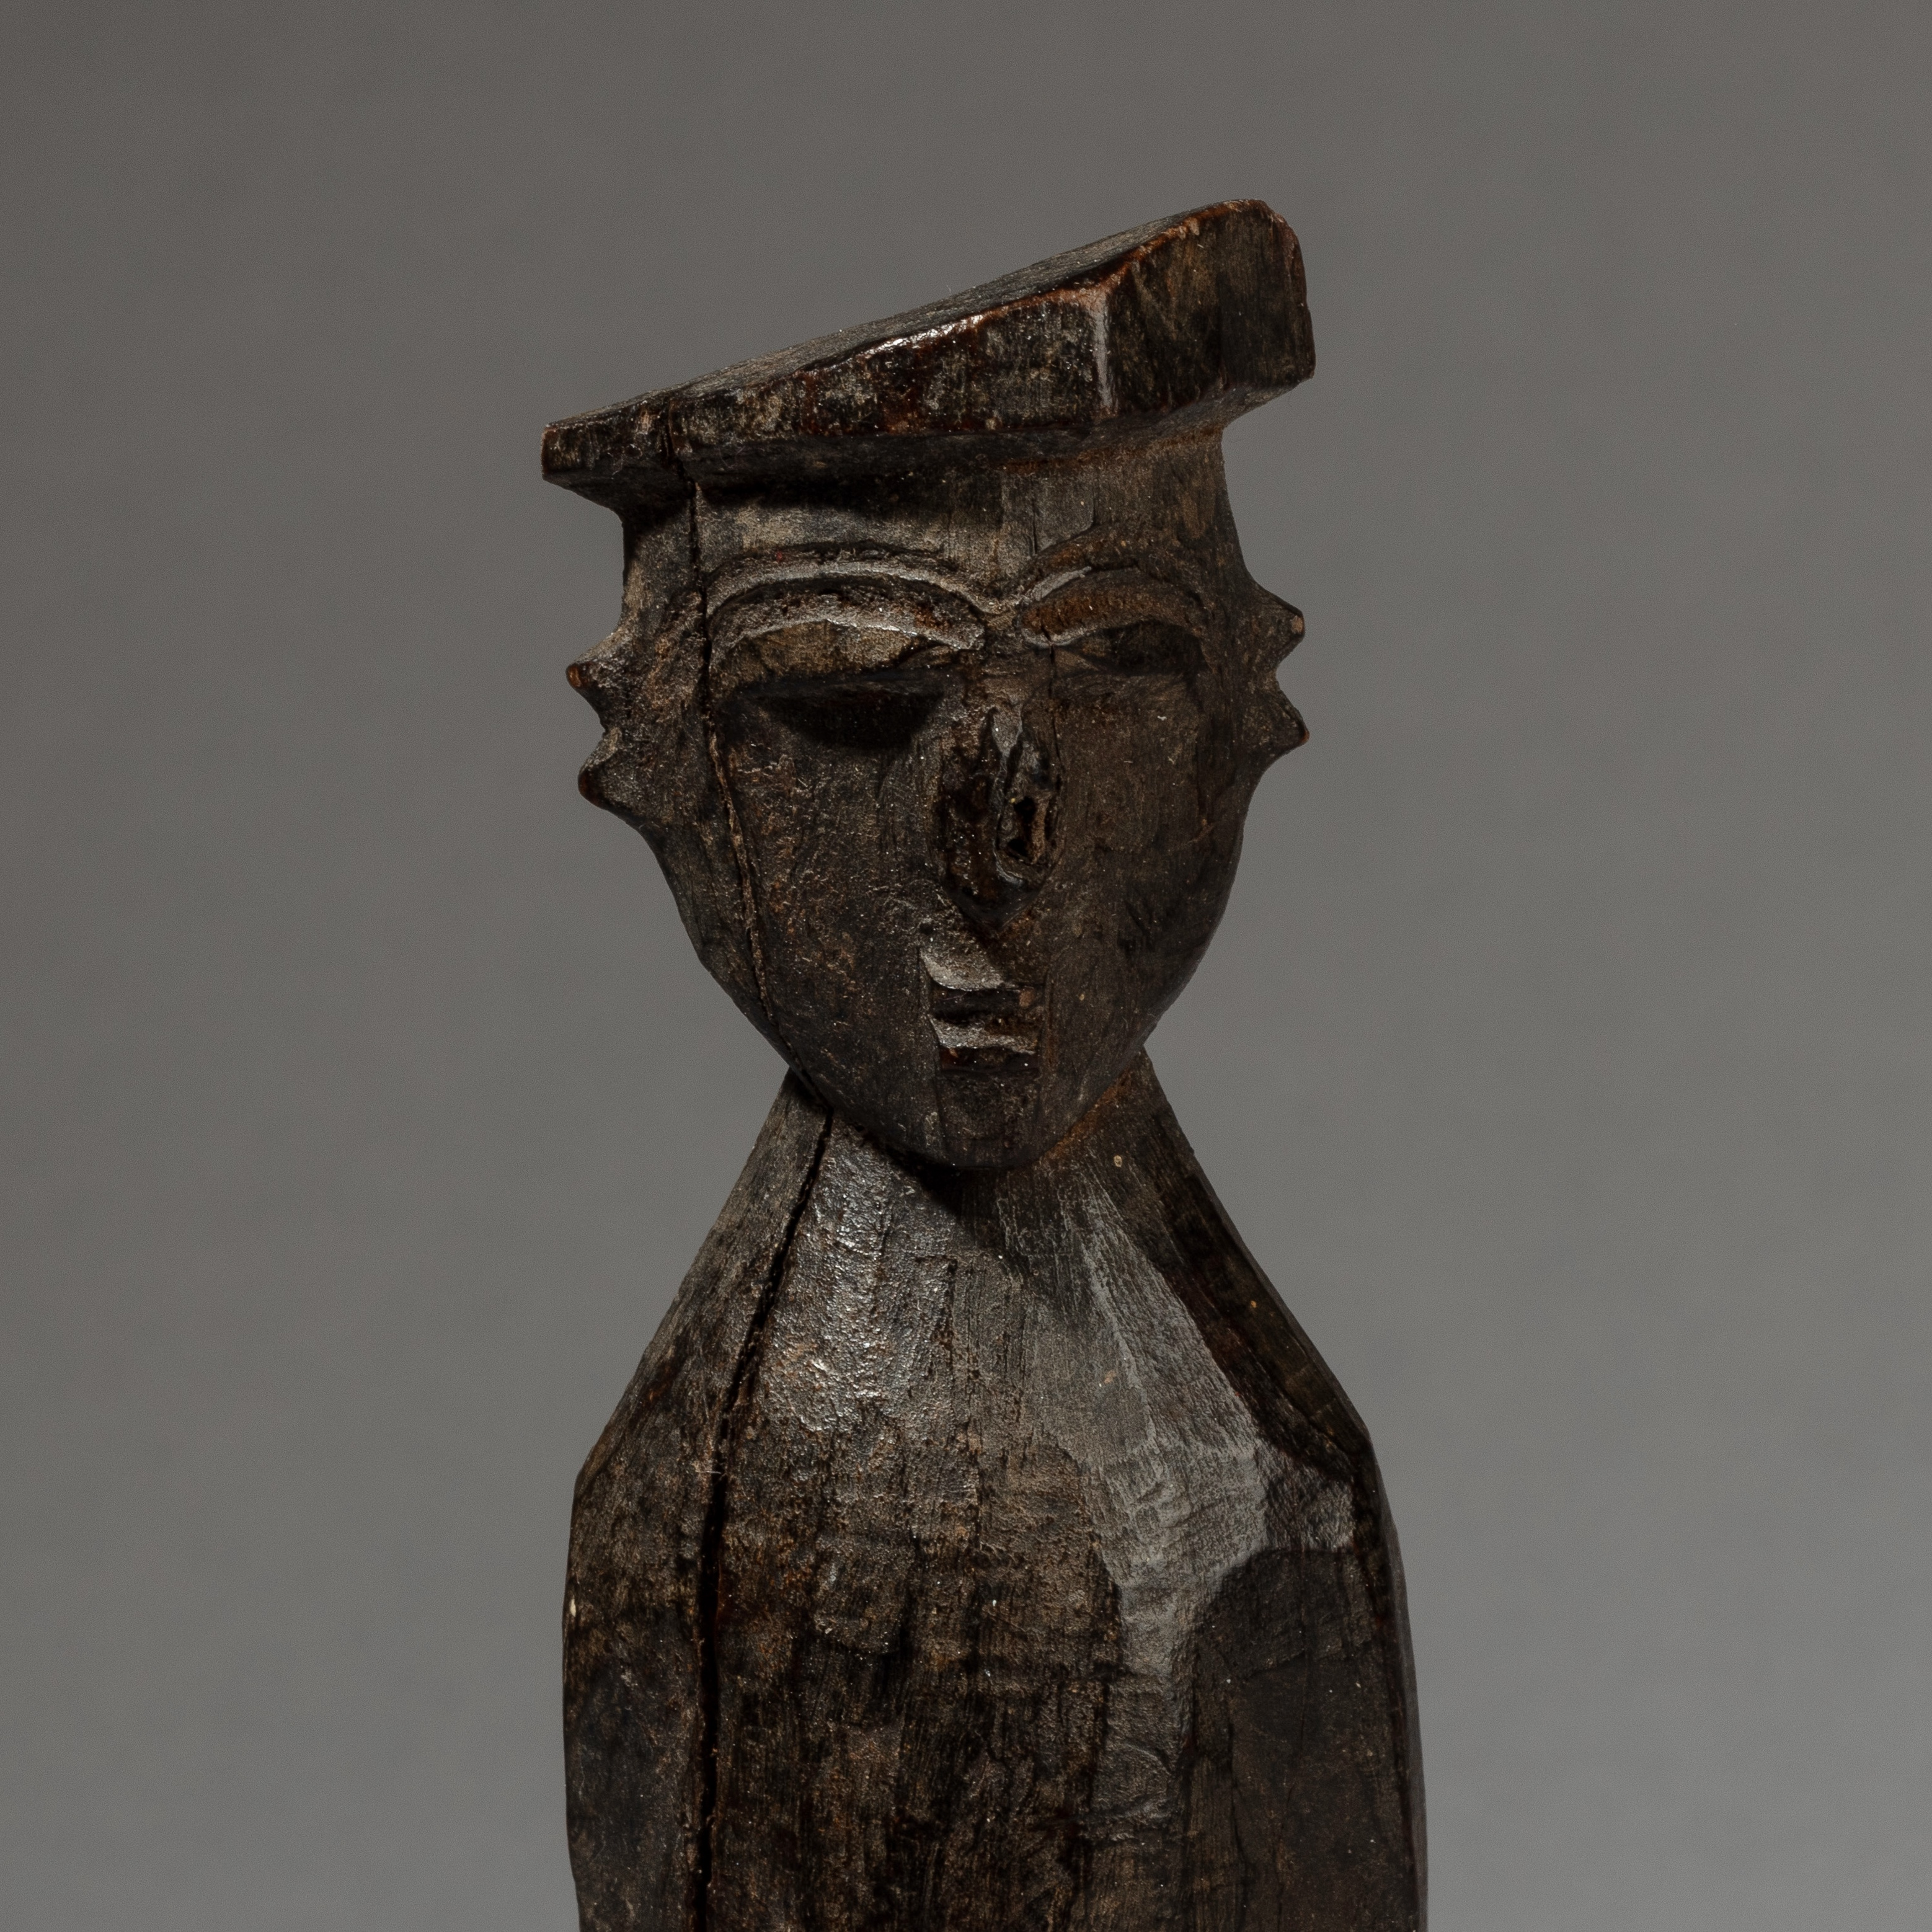 A SMALL LOBI THIL FIGURE WEARING A CAP, BURKINA FASO ( No 3443 )